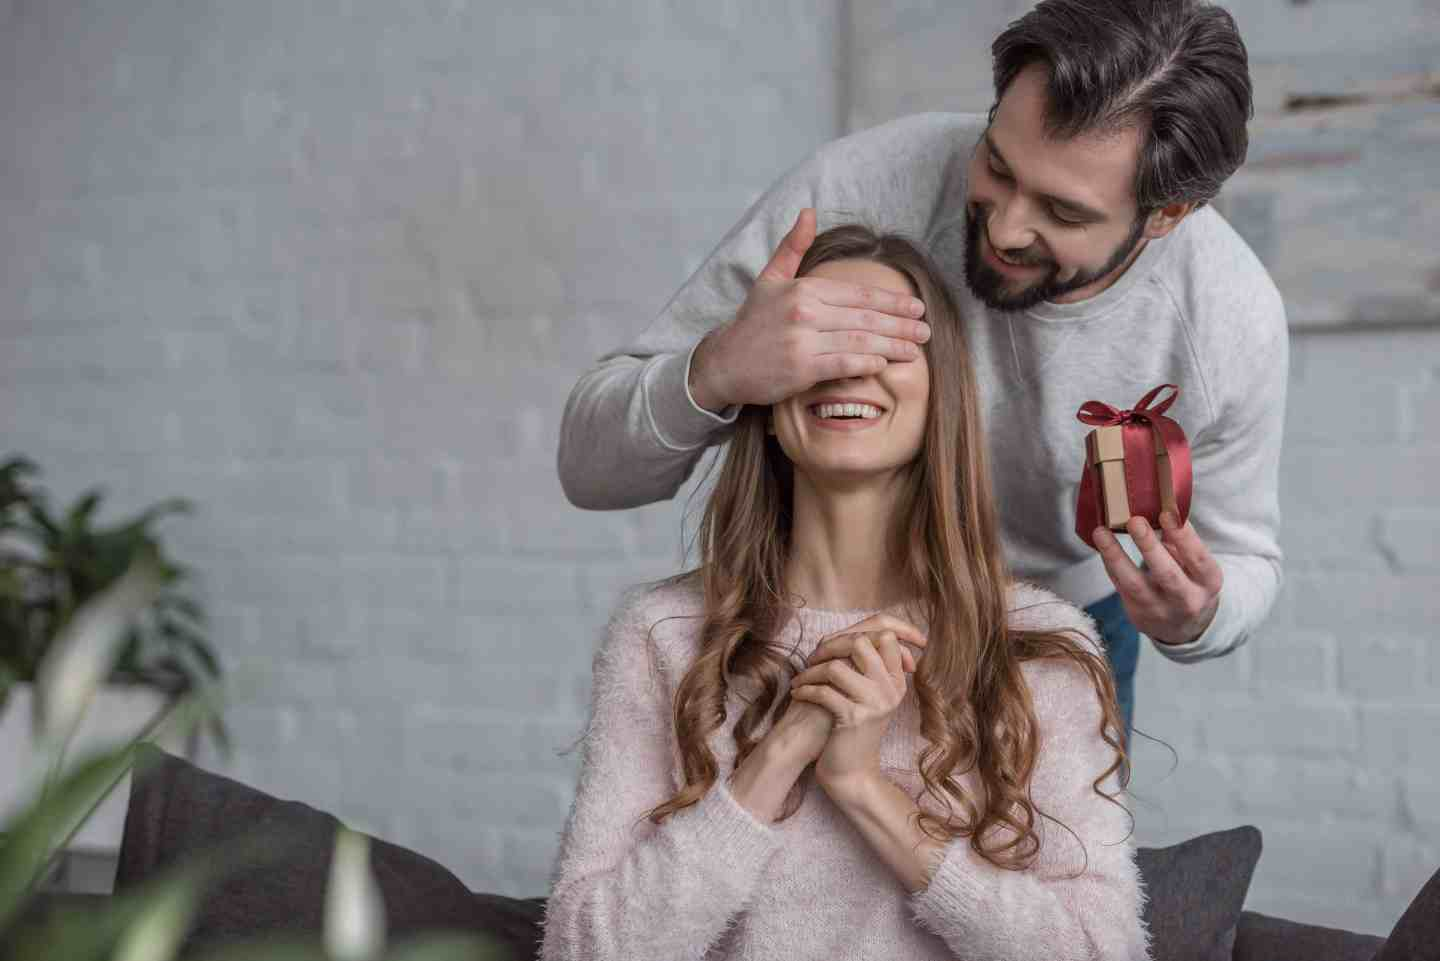 man giving a woman a gift with her eyes covered